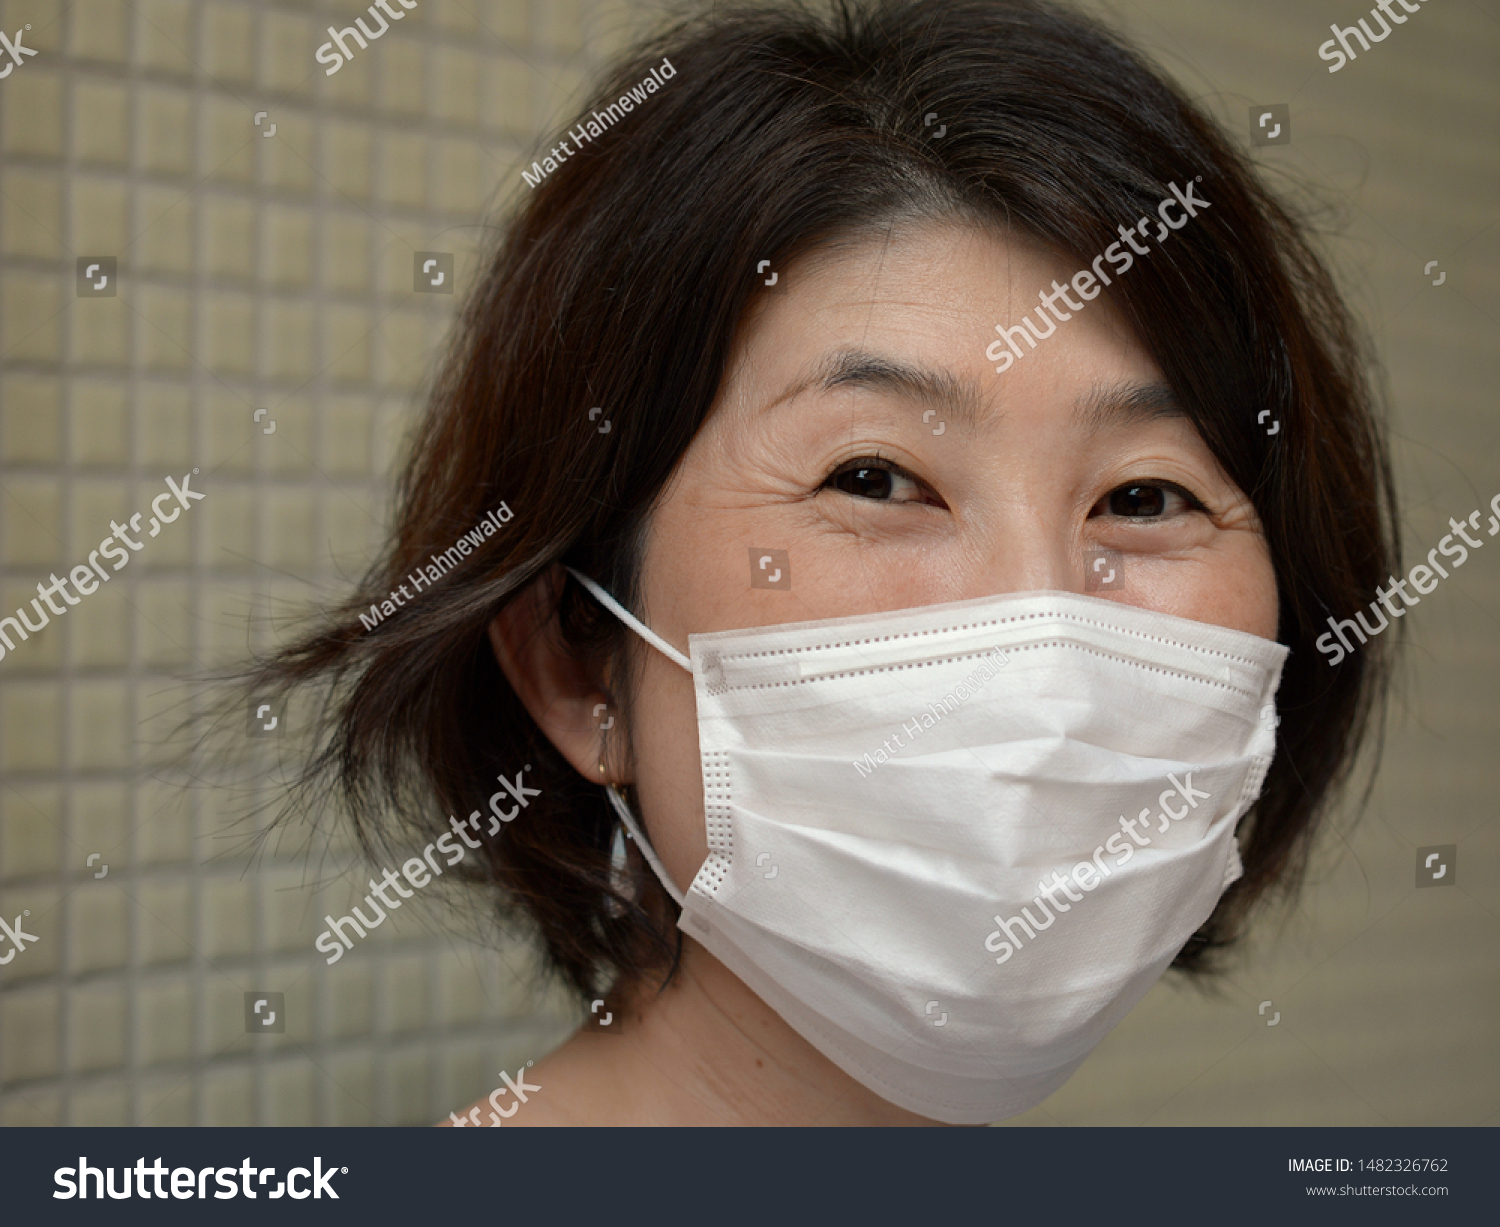 disposable japanese face mask